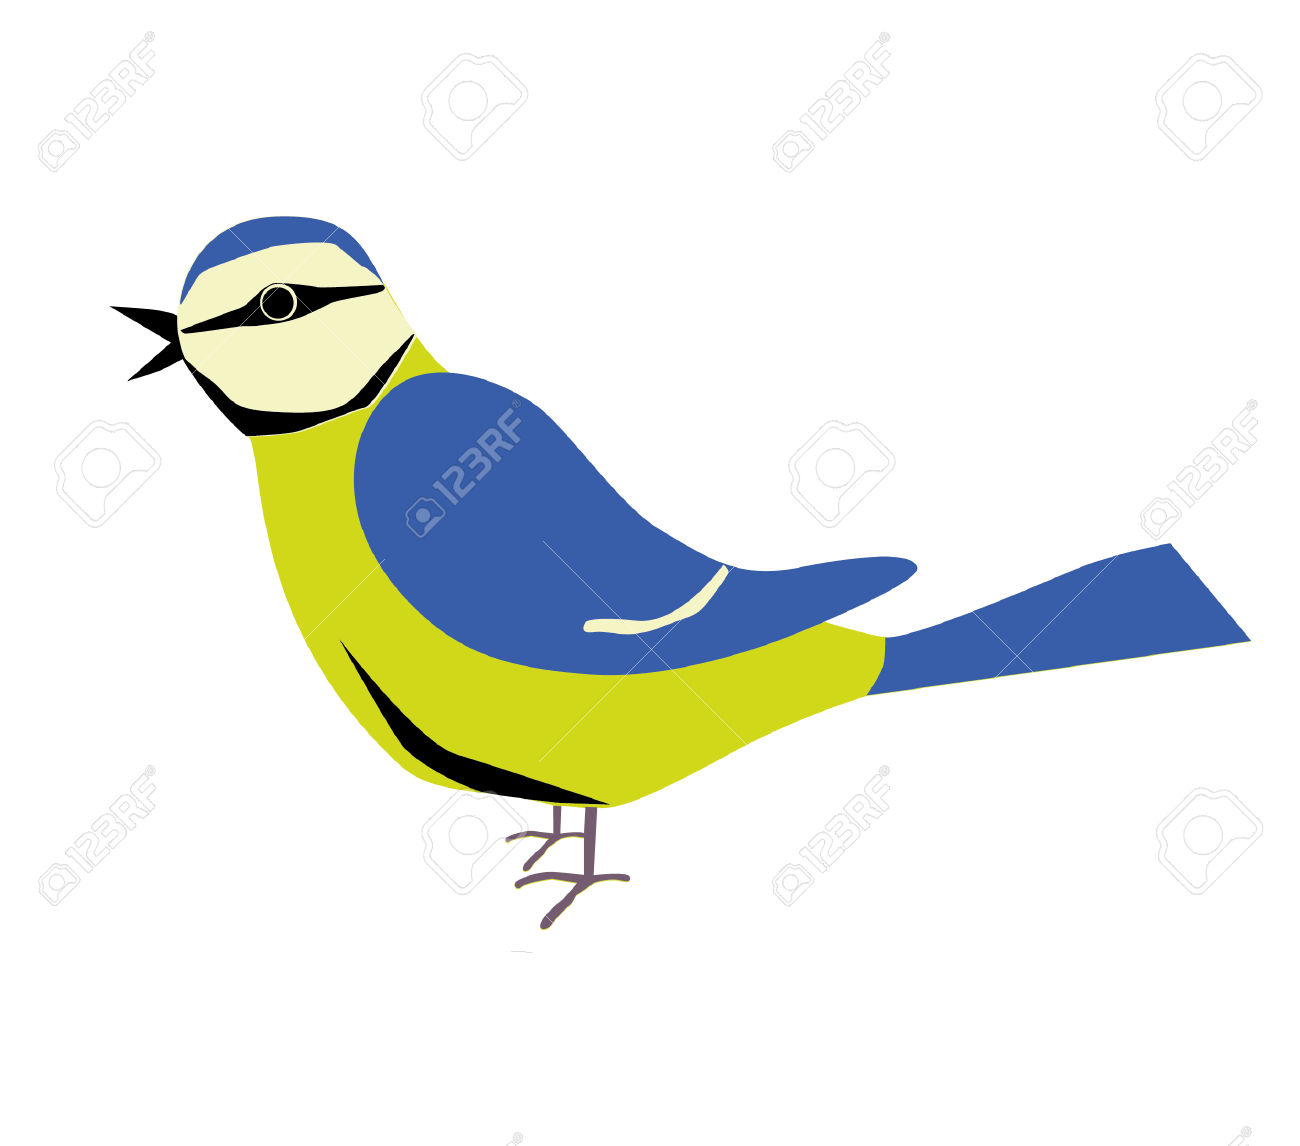 Blue Tit clipart #10, Download drawings